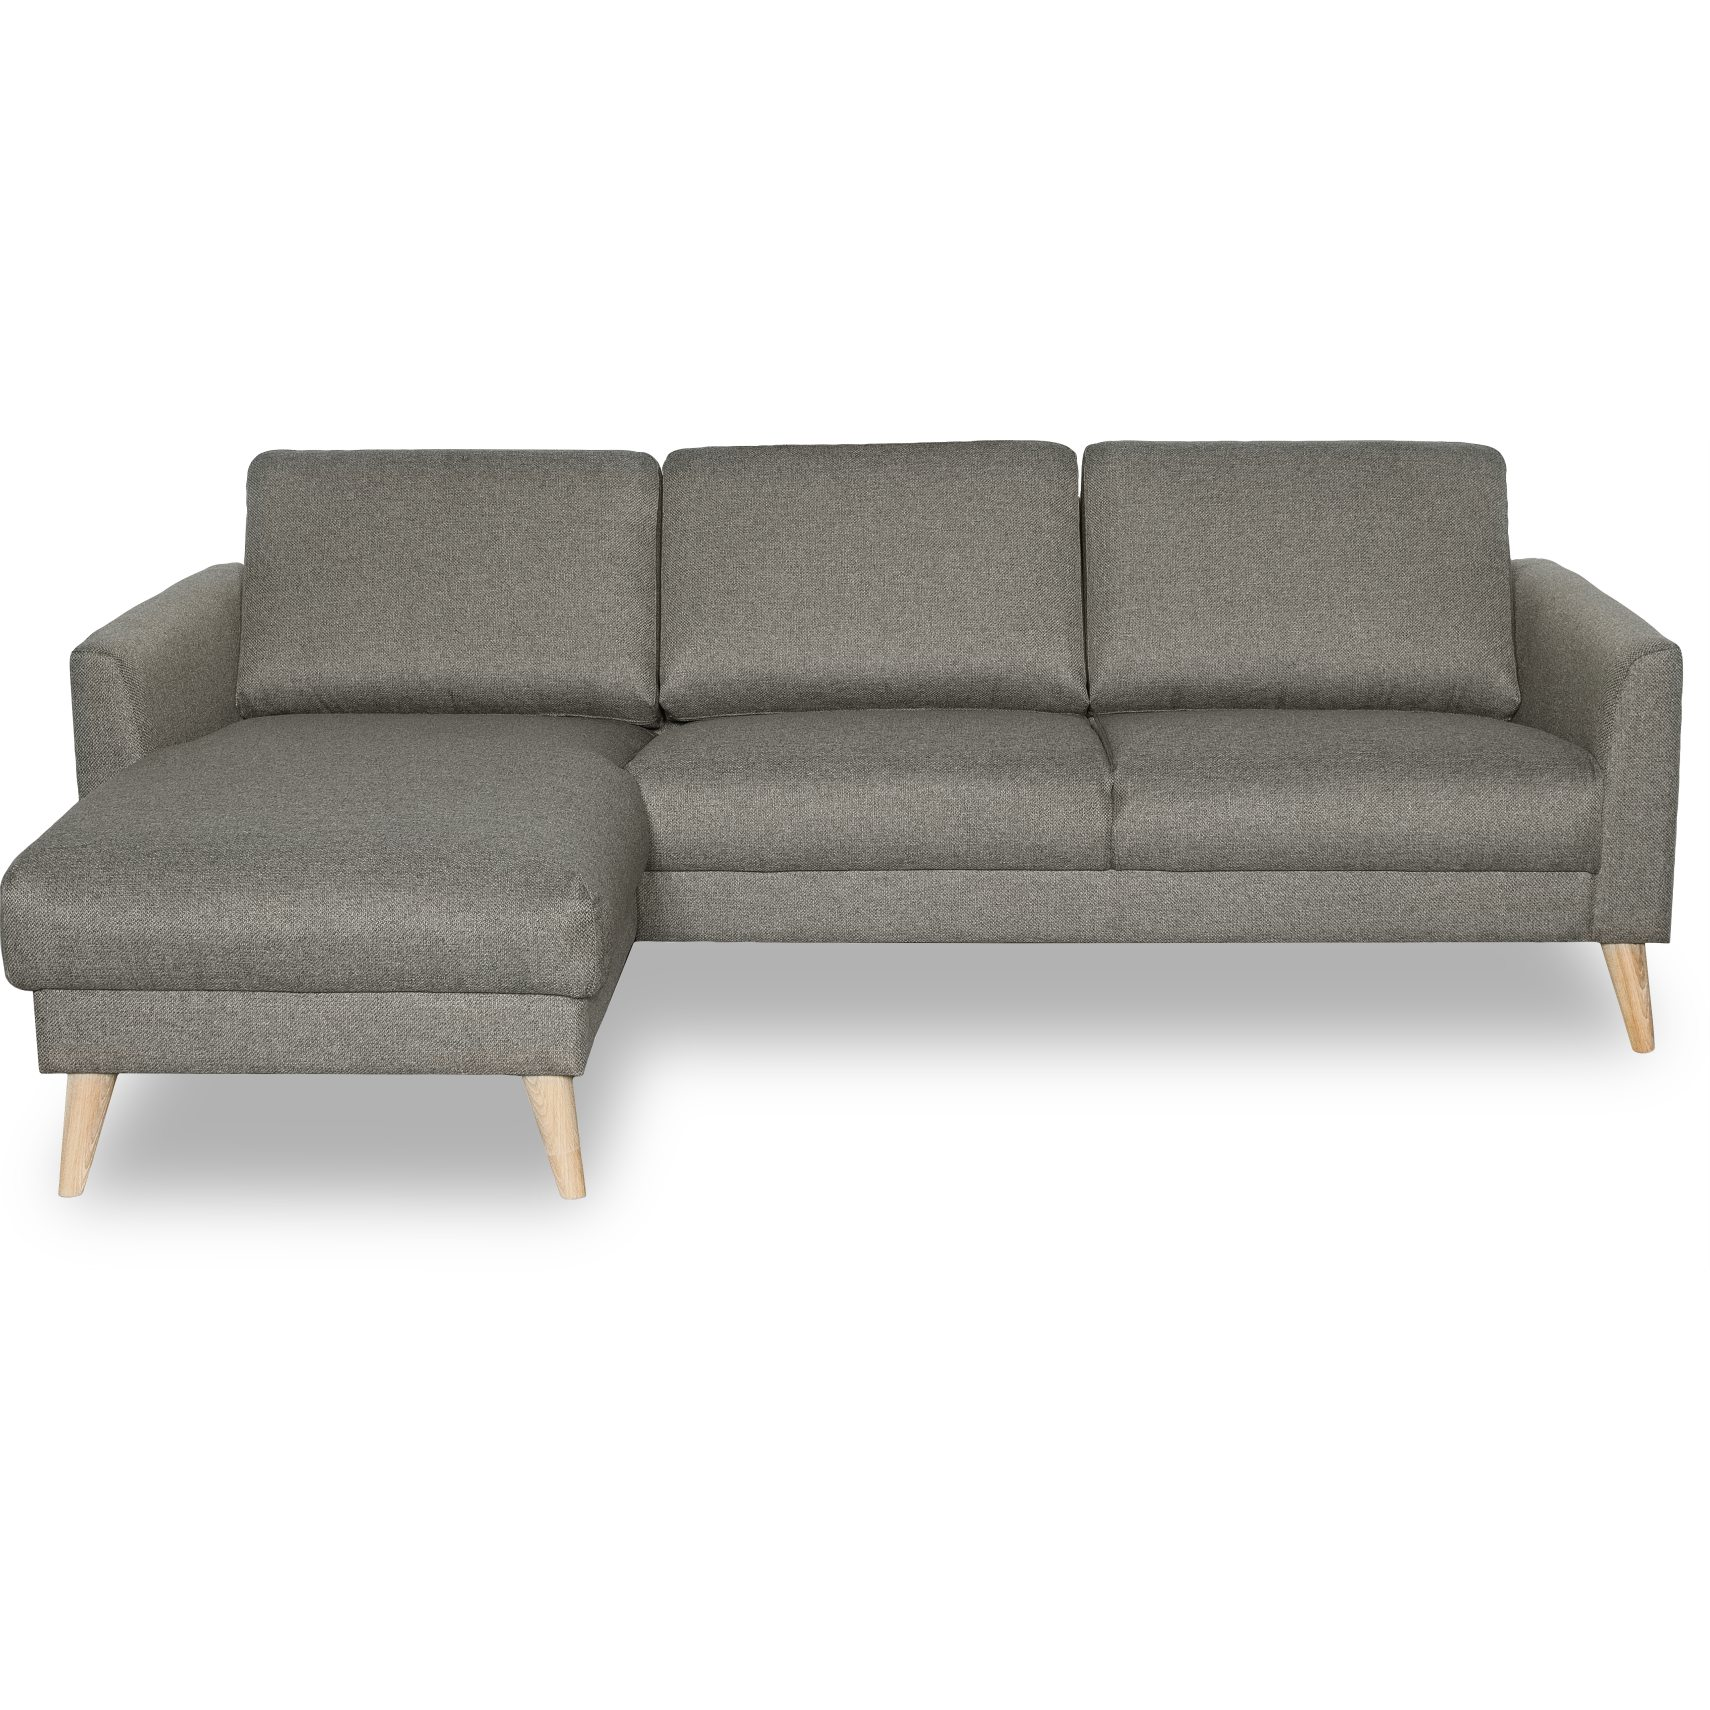 Lotus Sofa med chaiselong - Golf Deep Green stof og ben i hvidolieret eg